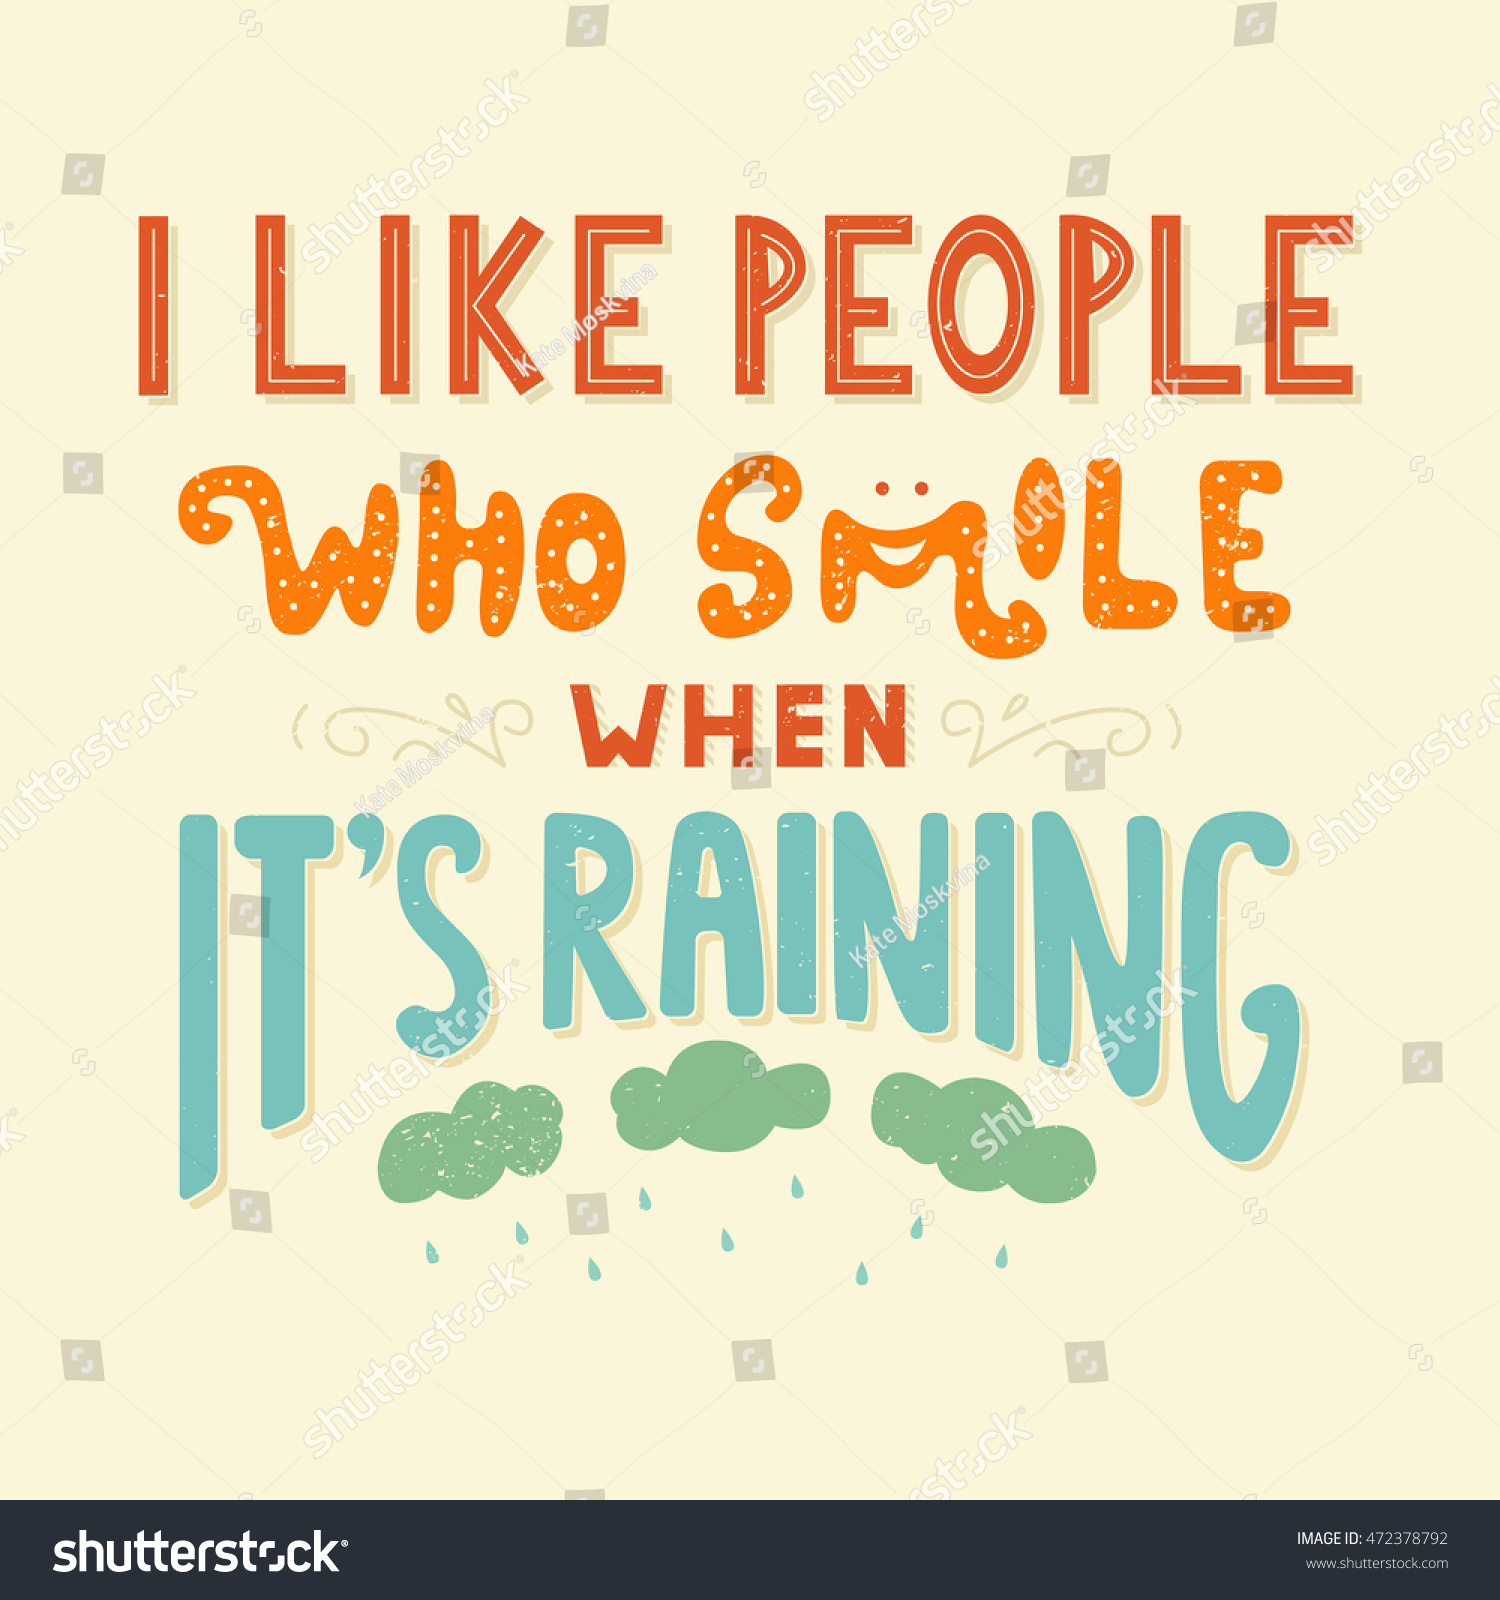 I Like People Who Smile When Itu0027s Raining. Quote. Hand Drawn Vintage  Illustration With